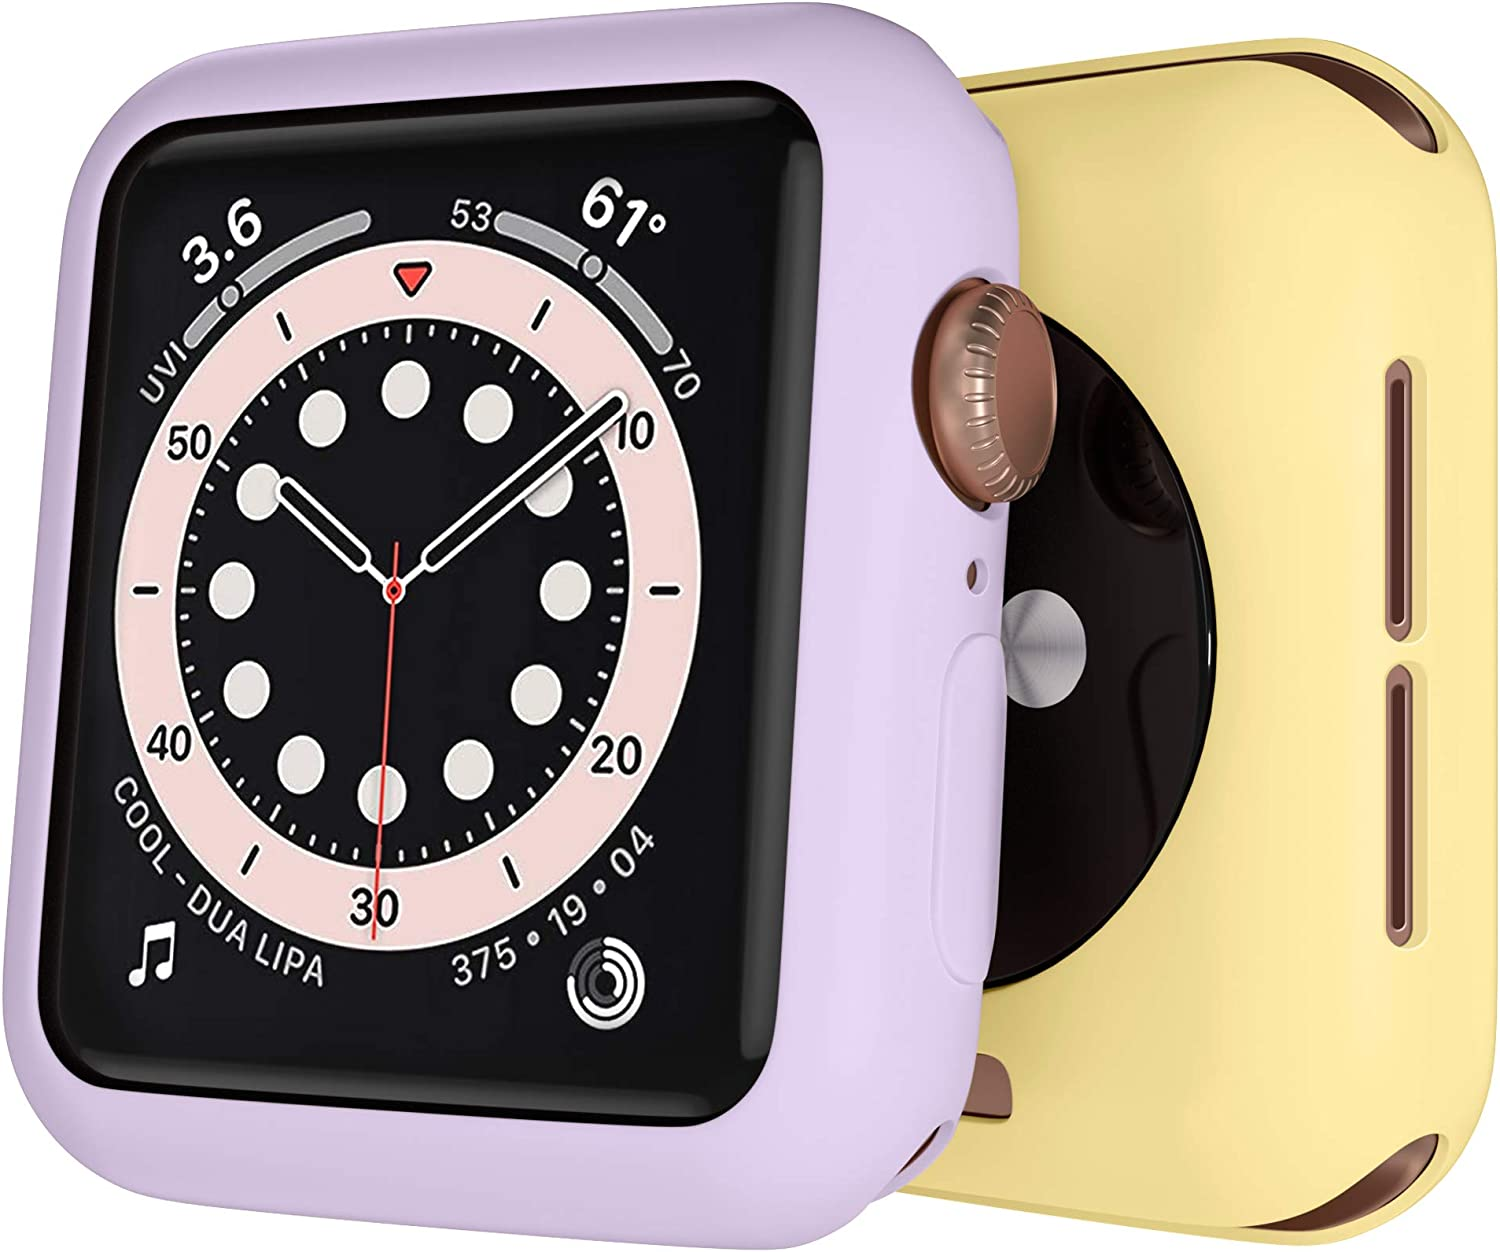 [2 Pack] GEAK 38mm Case Compatible for Apple Watch Series 3, Premium TPU Protective Case Lightweight Bumper Cover for iWatch Series 3/2/1, Milk Yellow/Lavender